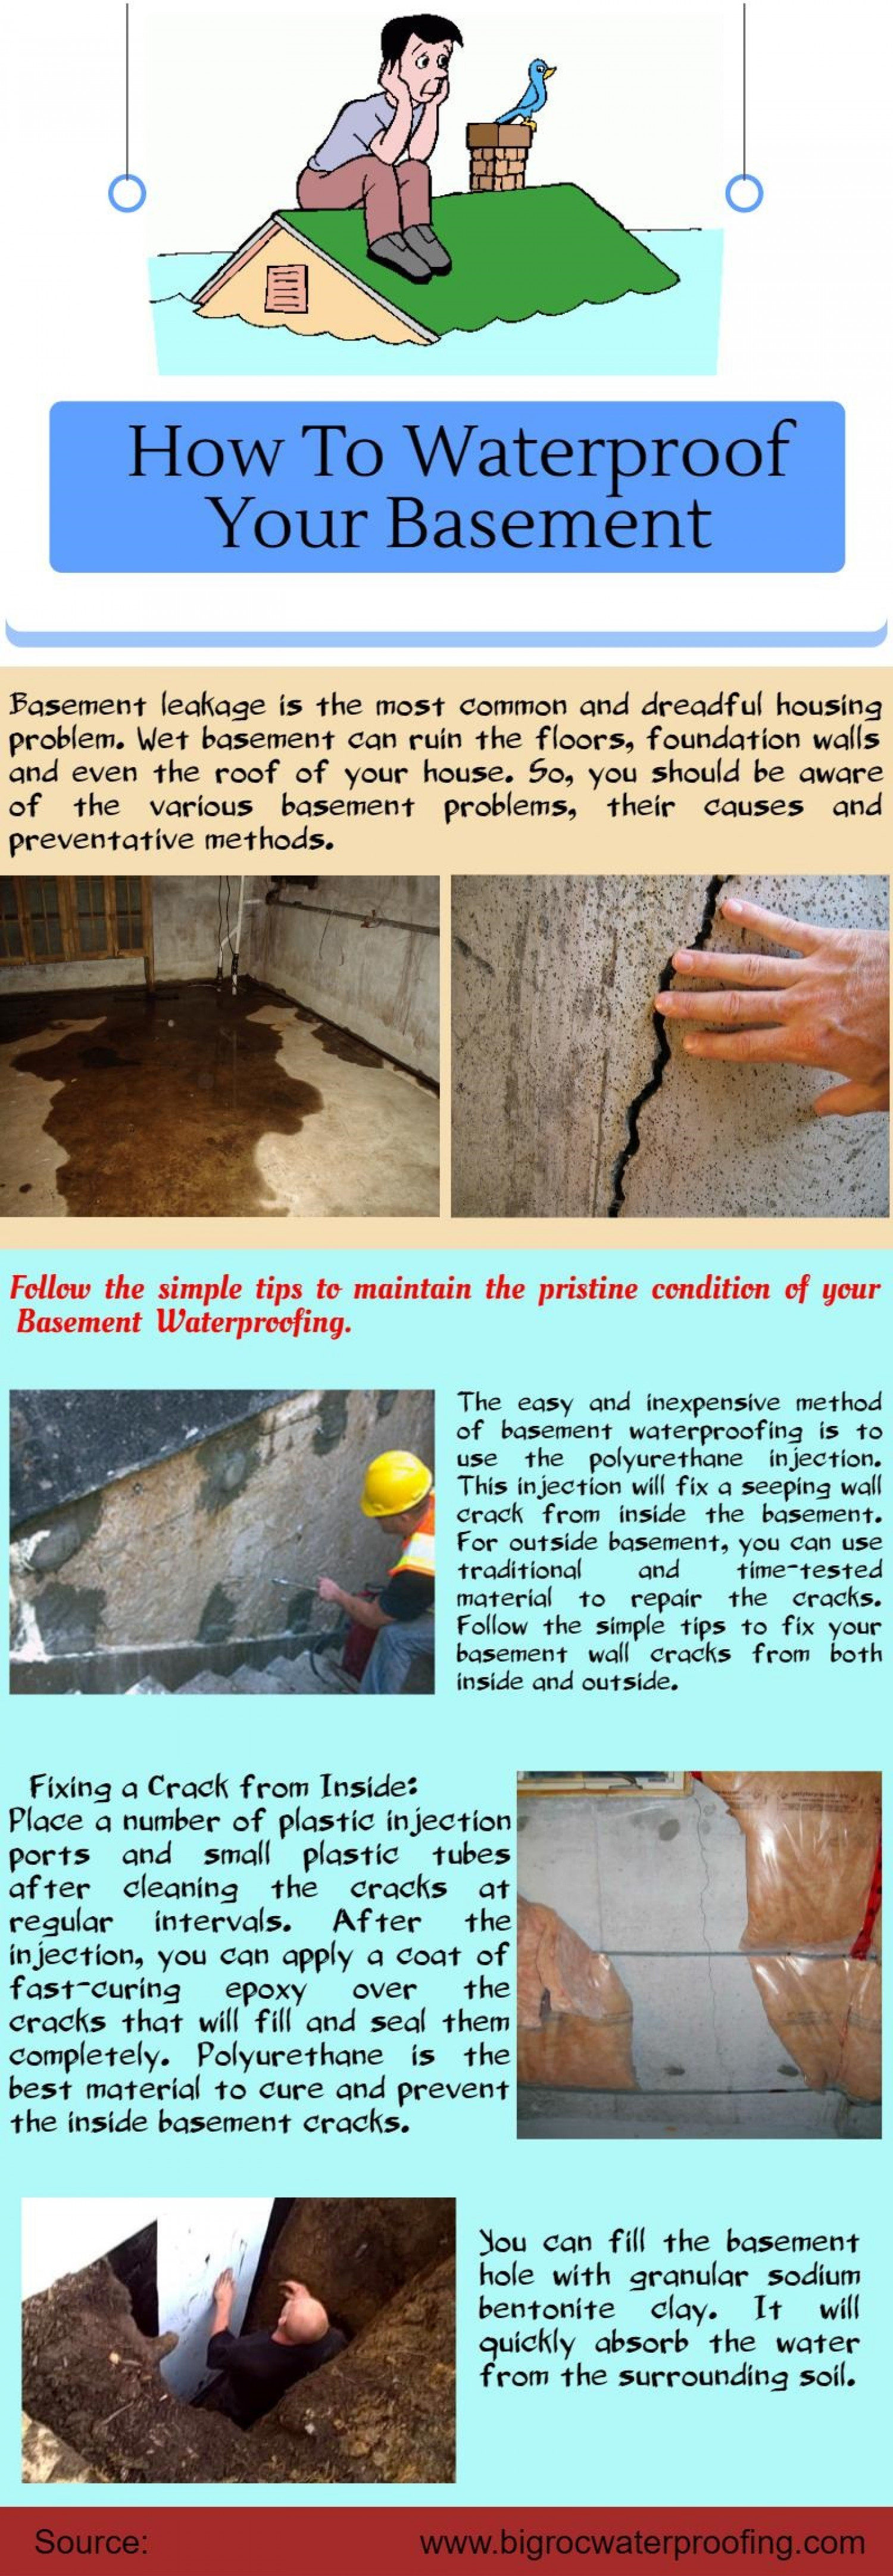 How To Waterproof Your Basement Infographic